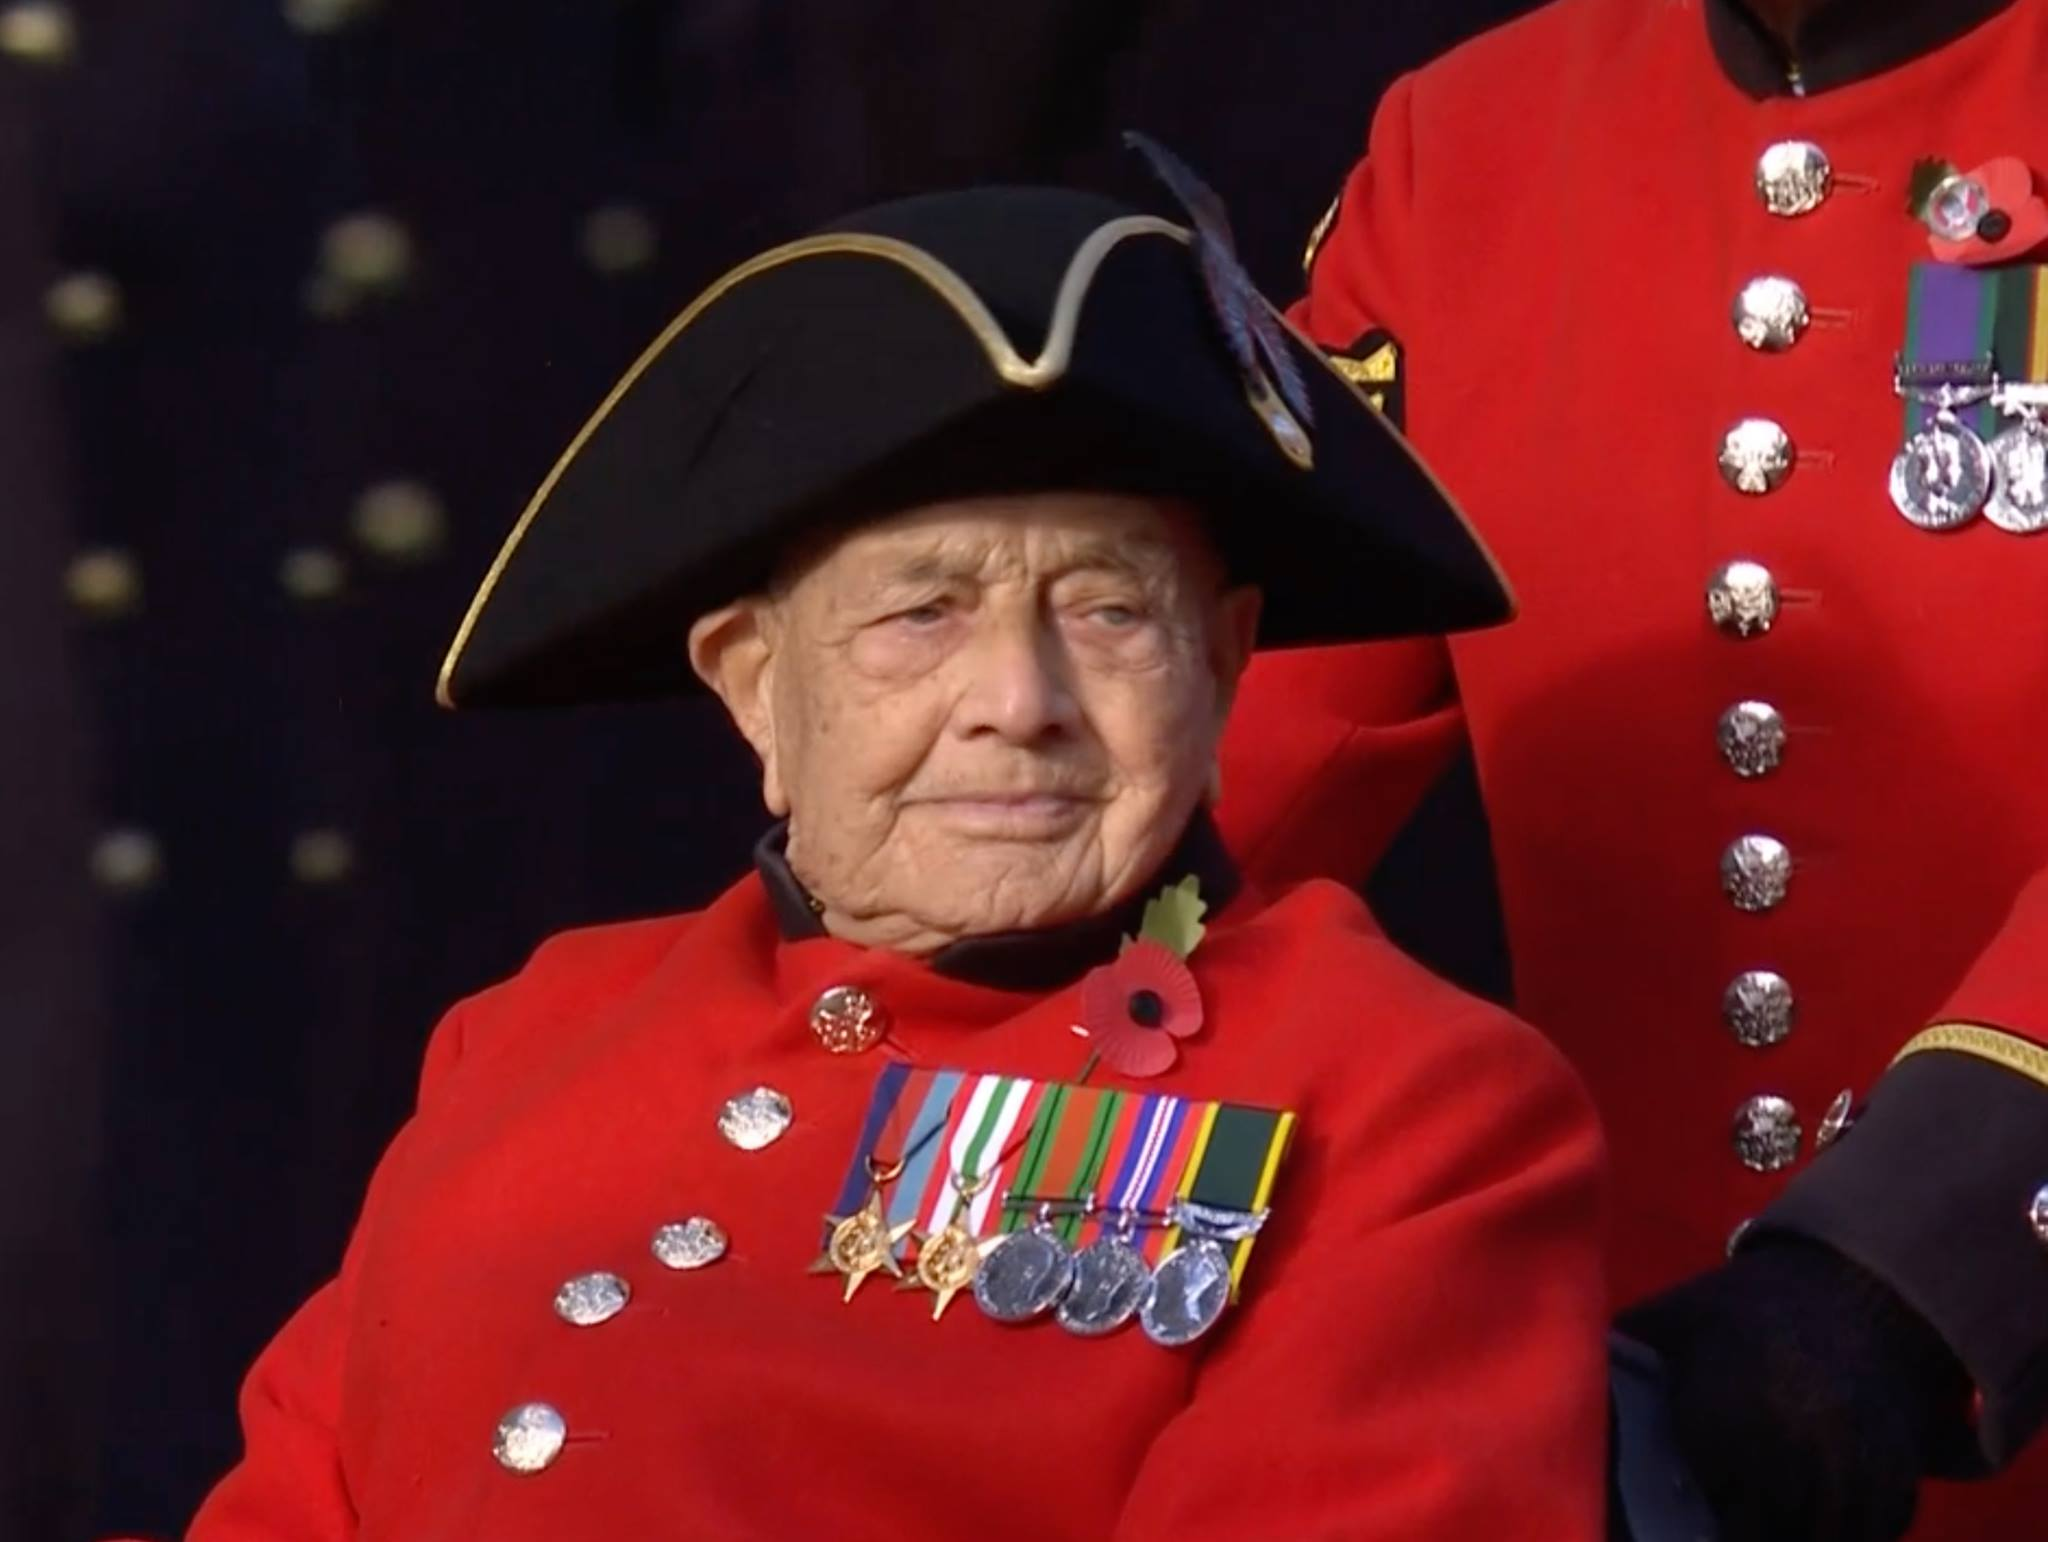 Chelsea Pensioners march past the Cenotaph